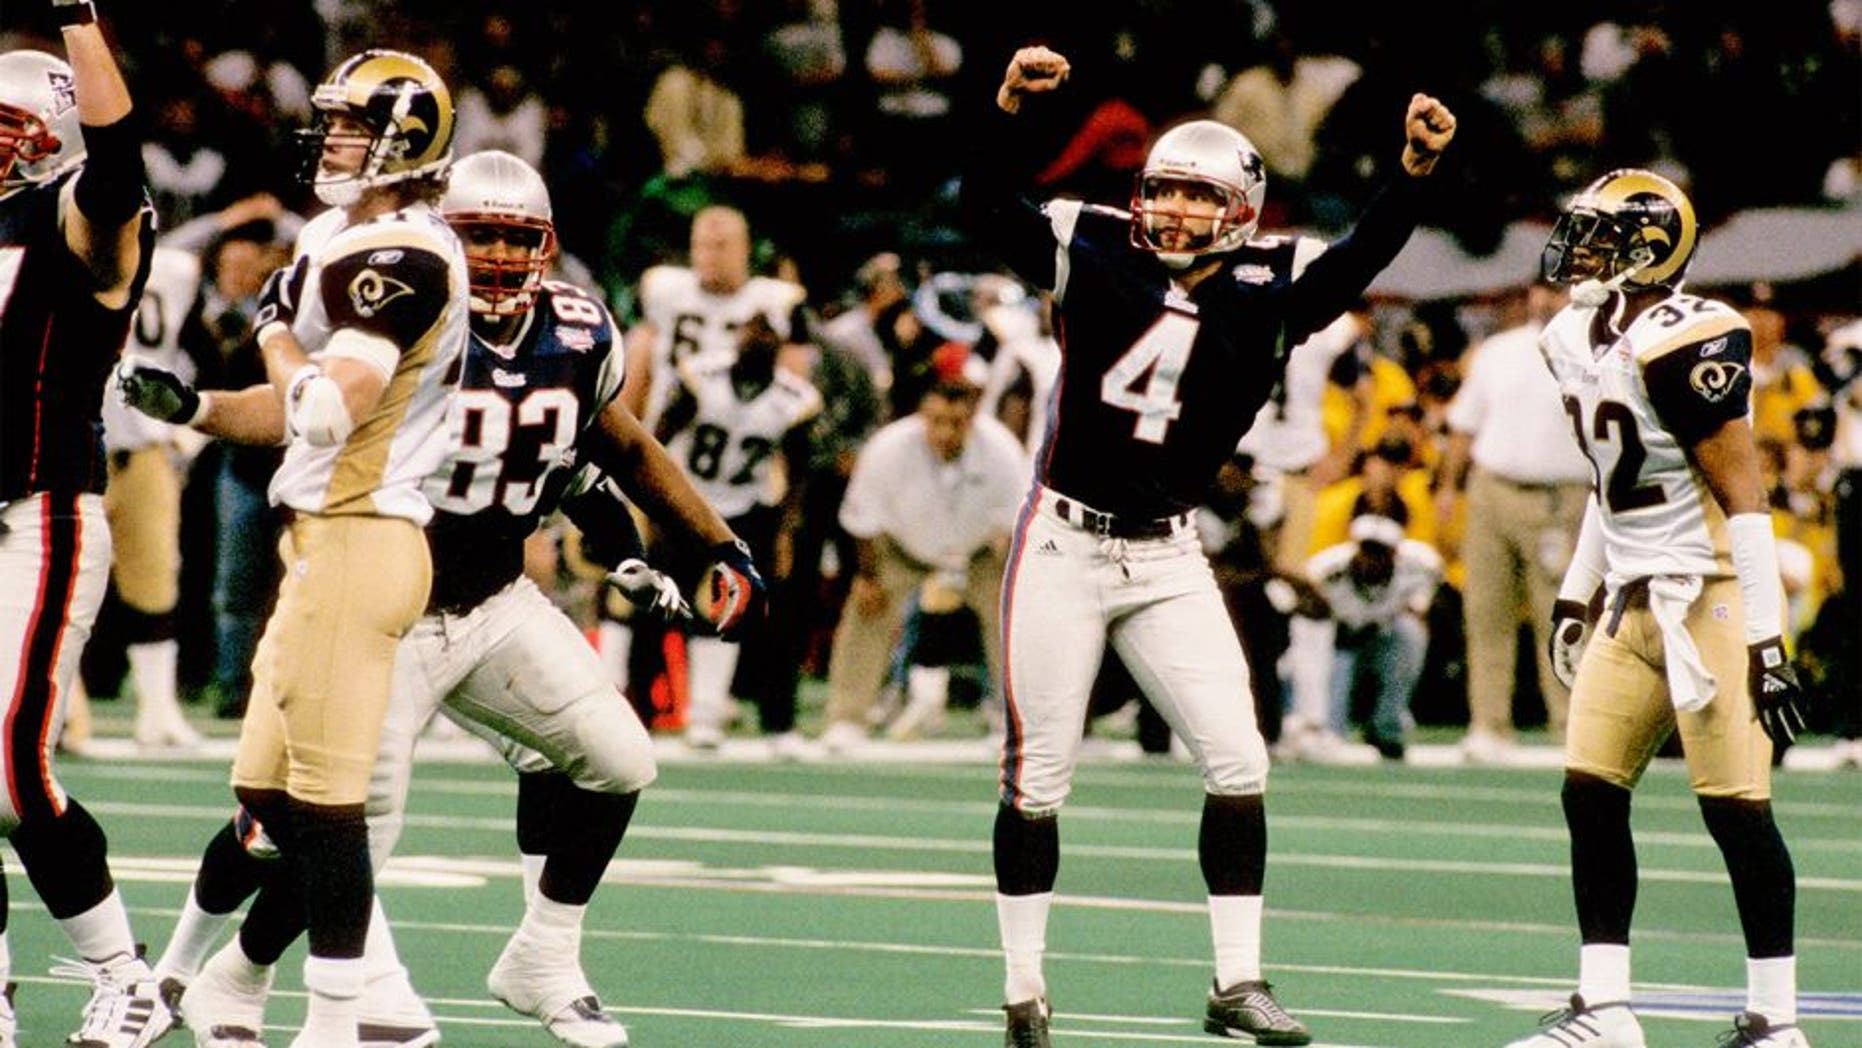 New England Patriots kicker Adam Vinatieri (4) celebrates his 48-yard game-winning kick during Super Bowl XXXVI, a 20-17 victory over the St. Louis Rams on February 3, 2002, at the Louisiana Superdome in New Orleans, Louisiana. (Photo by Sylvia Allen/Getty Images)